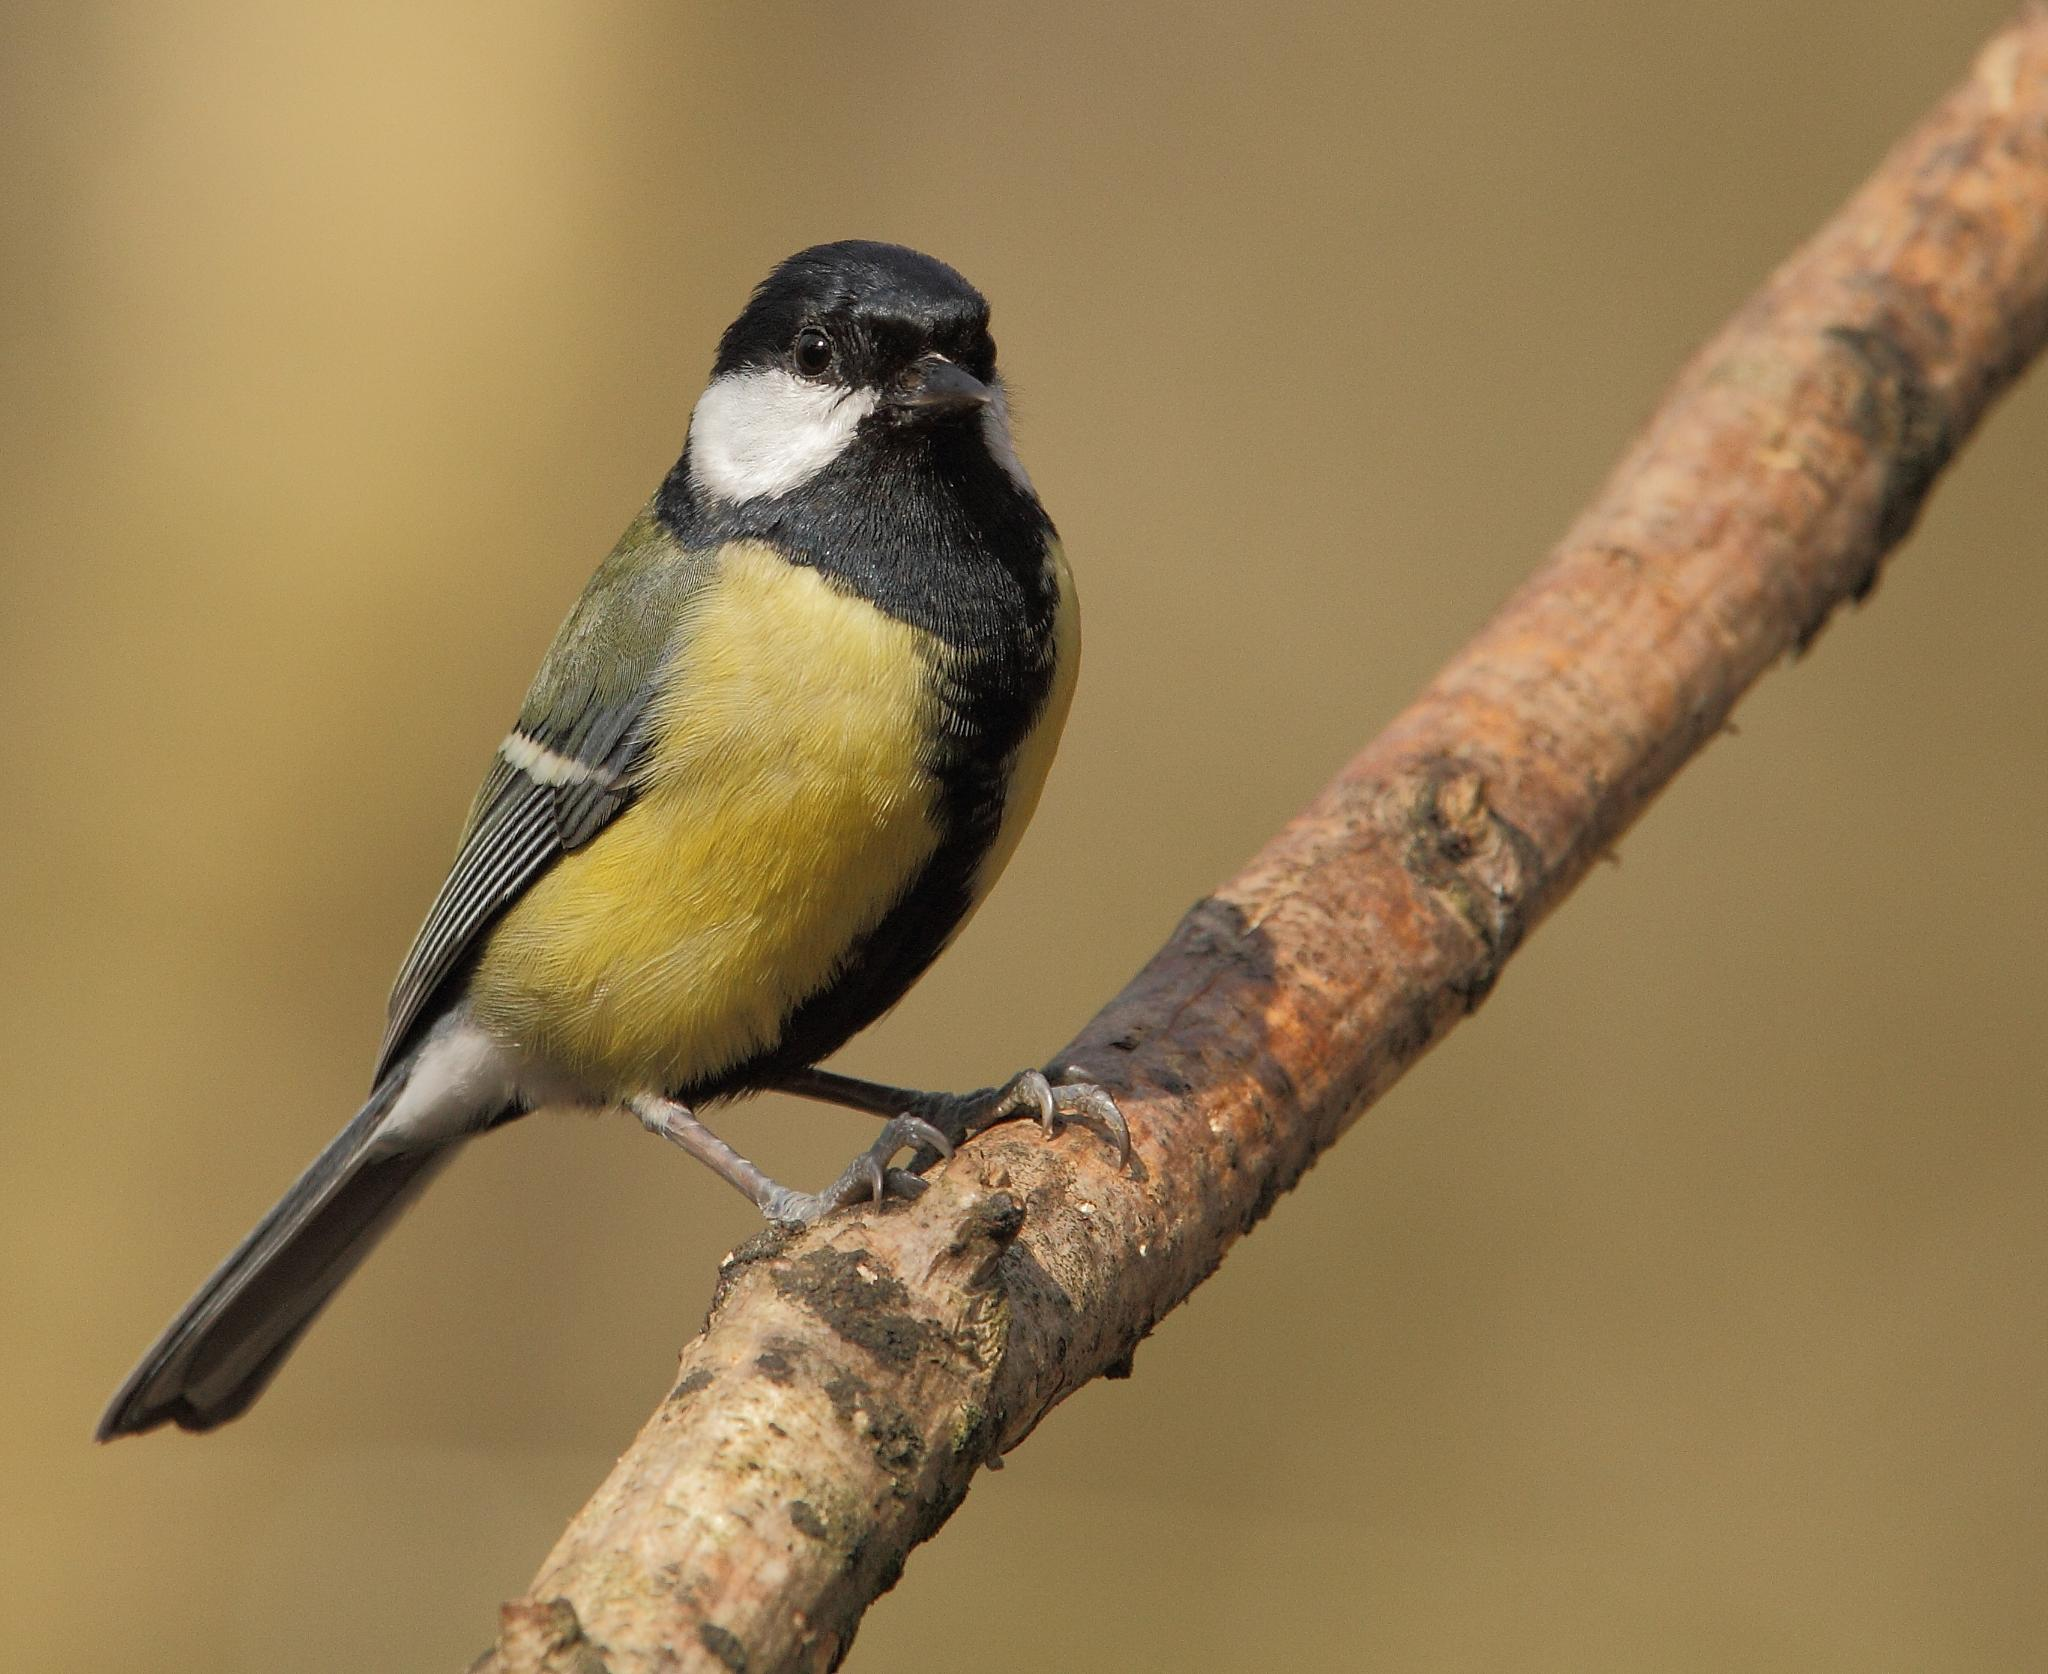 Great Tit by kingfisher